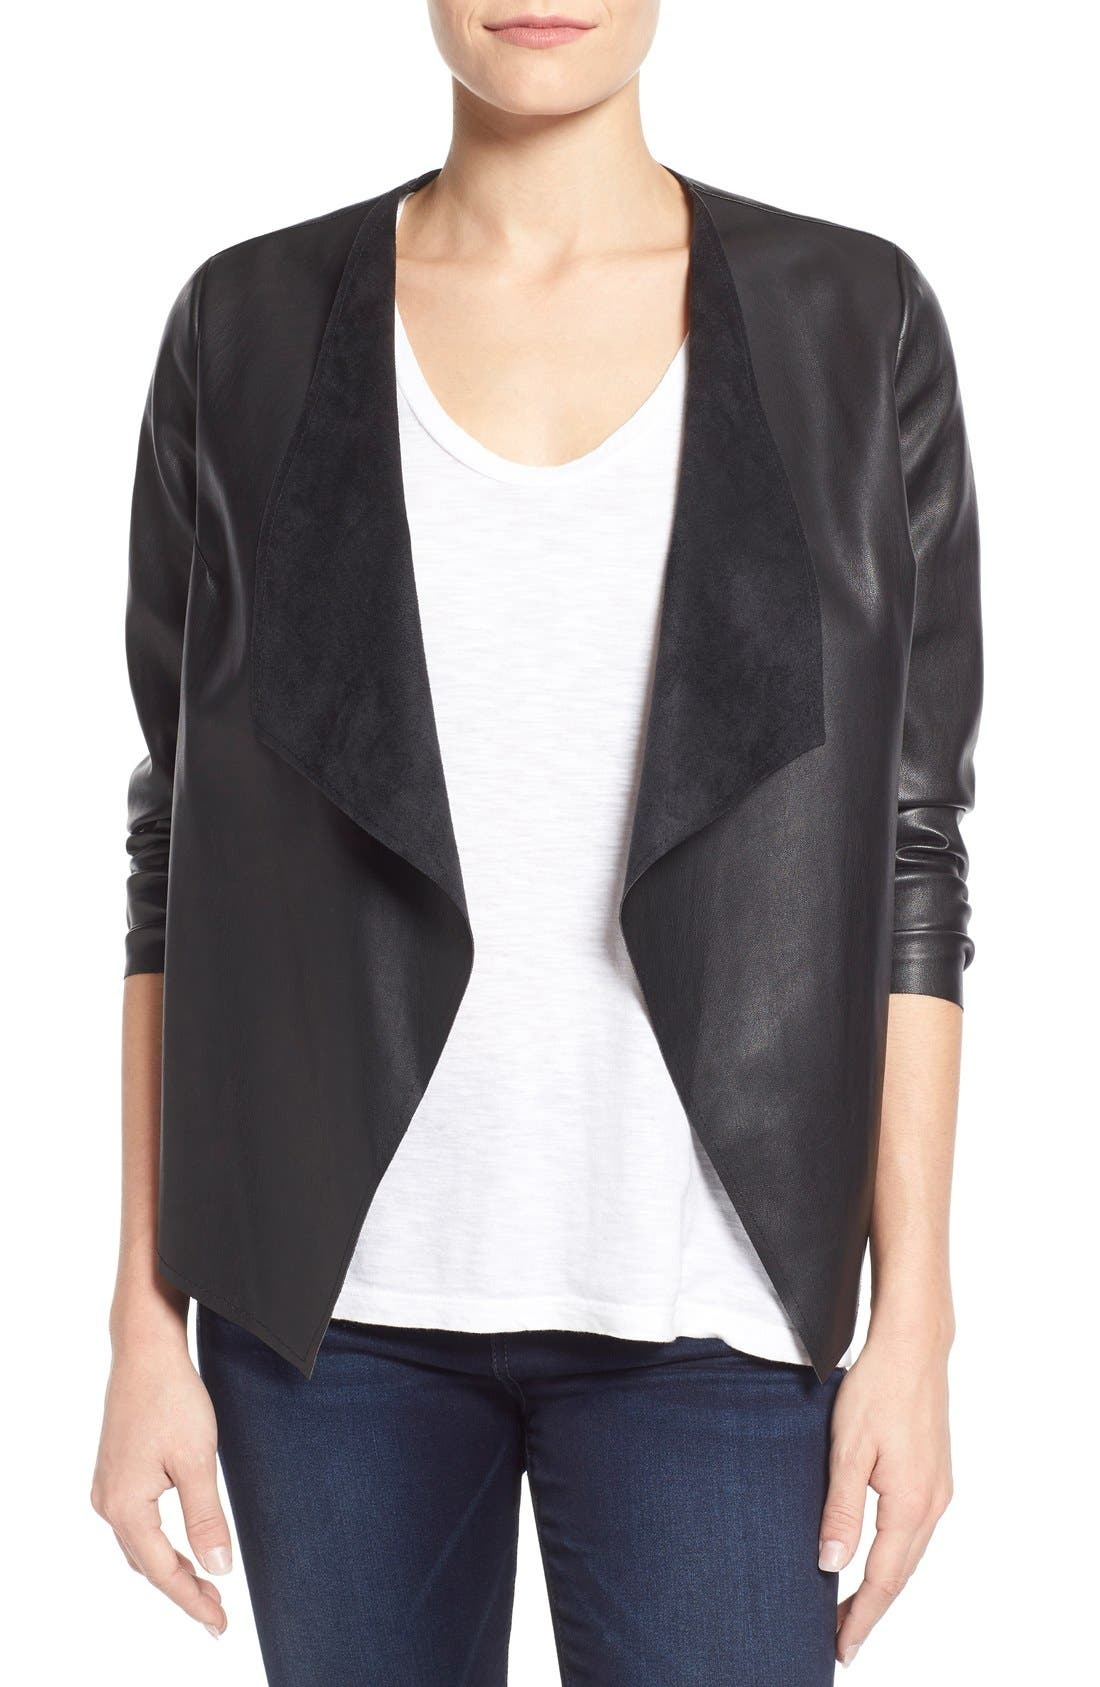 Alternate Image 1 Selected - KUT from the Kloth 'Mira' Lace Back Faux Leather Jacket